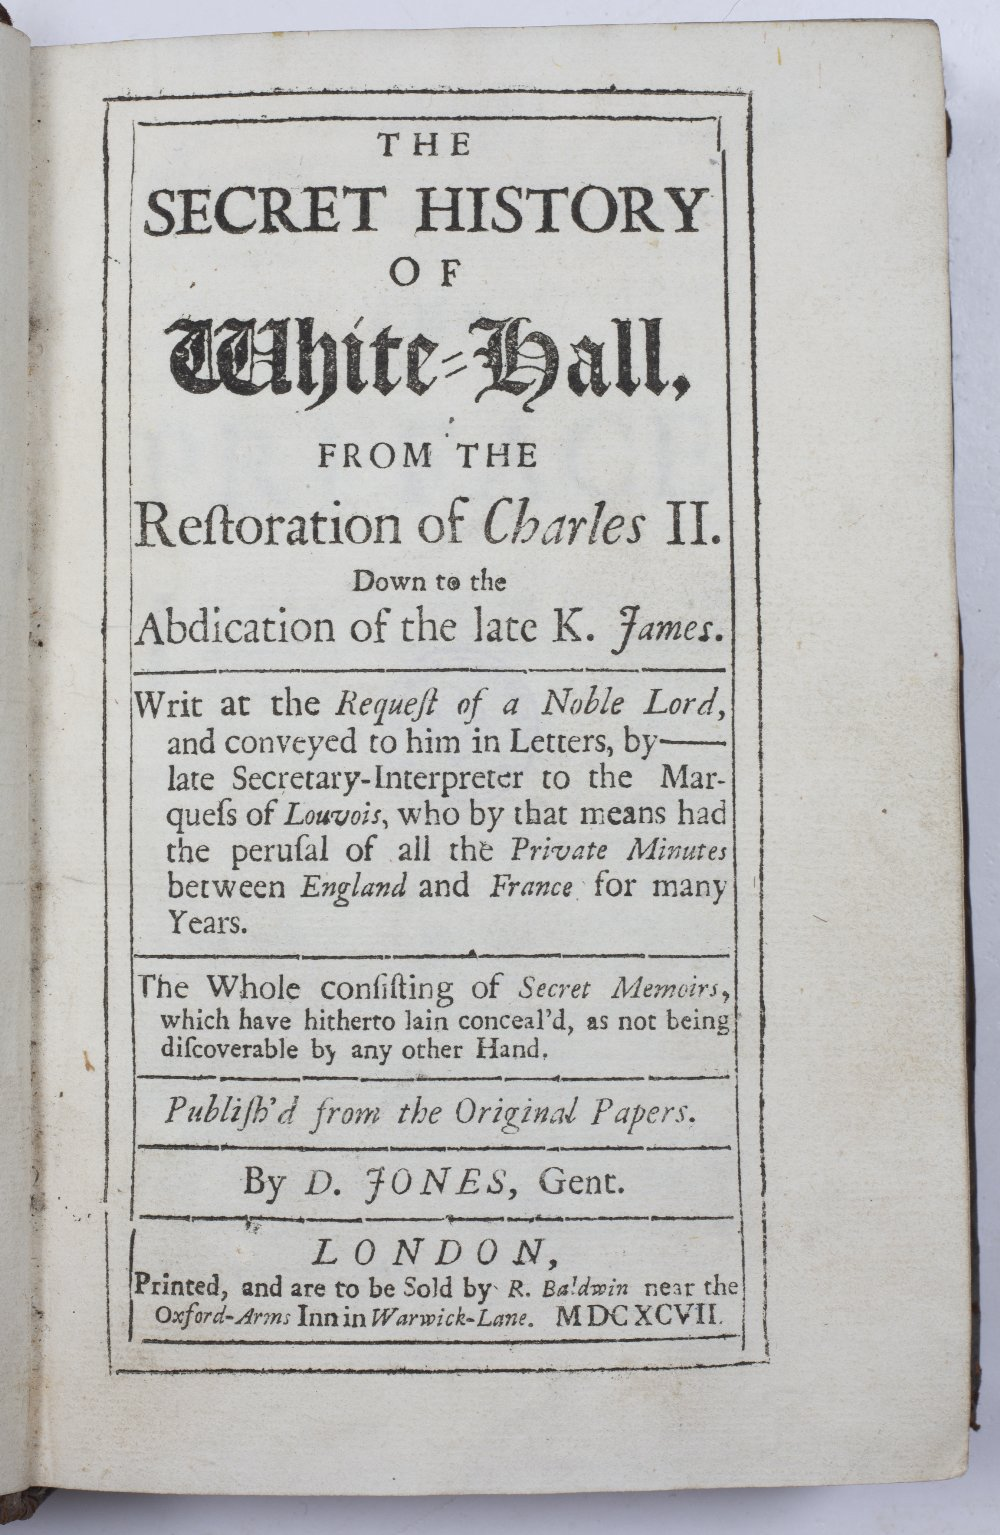 JONES, D, 'The Secret History of White-Hall from the Restoration of Charles II down to the